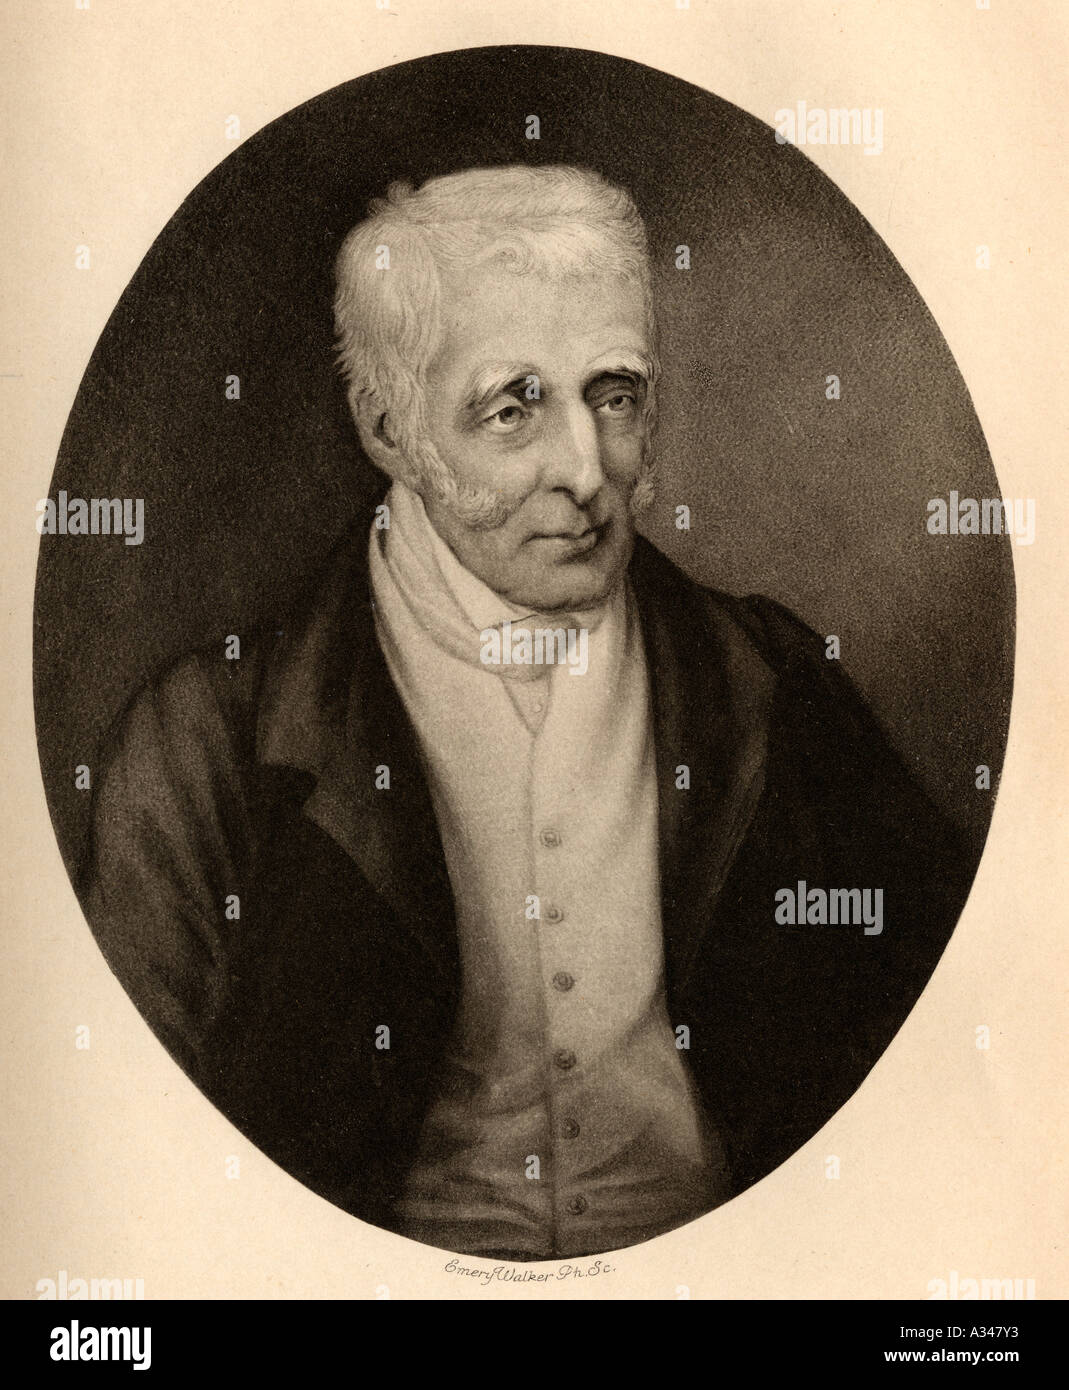 Arthur Wellesley, 1st Duke of Wellington, 1769 - 1852. British soldier and statesman. - Stock Image